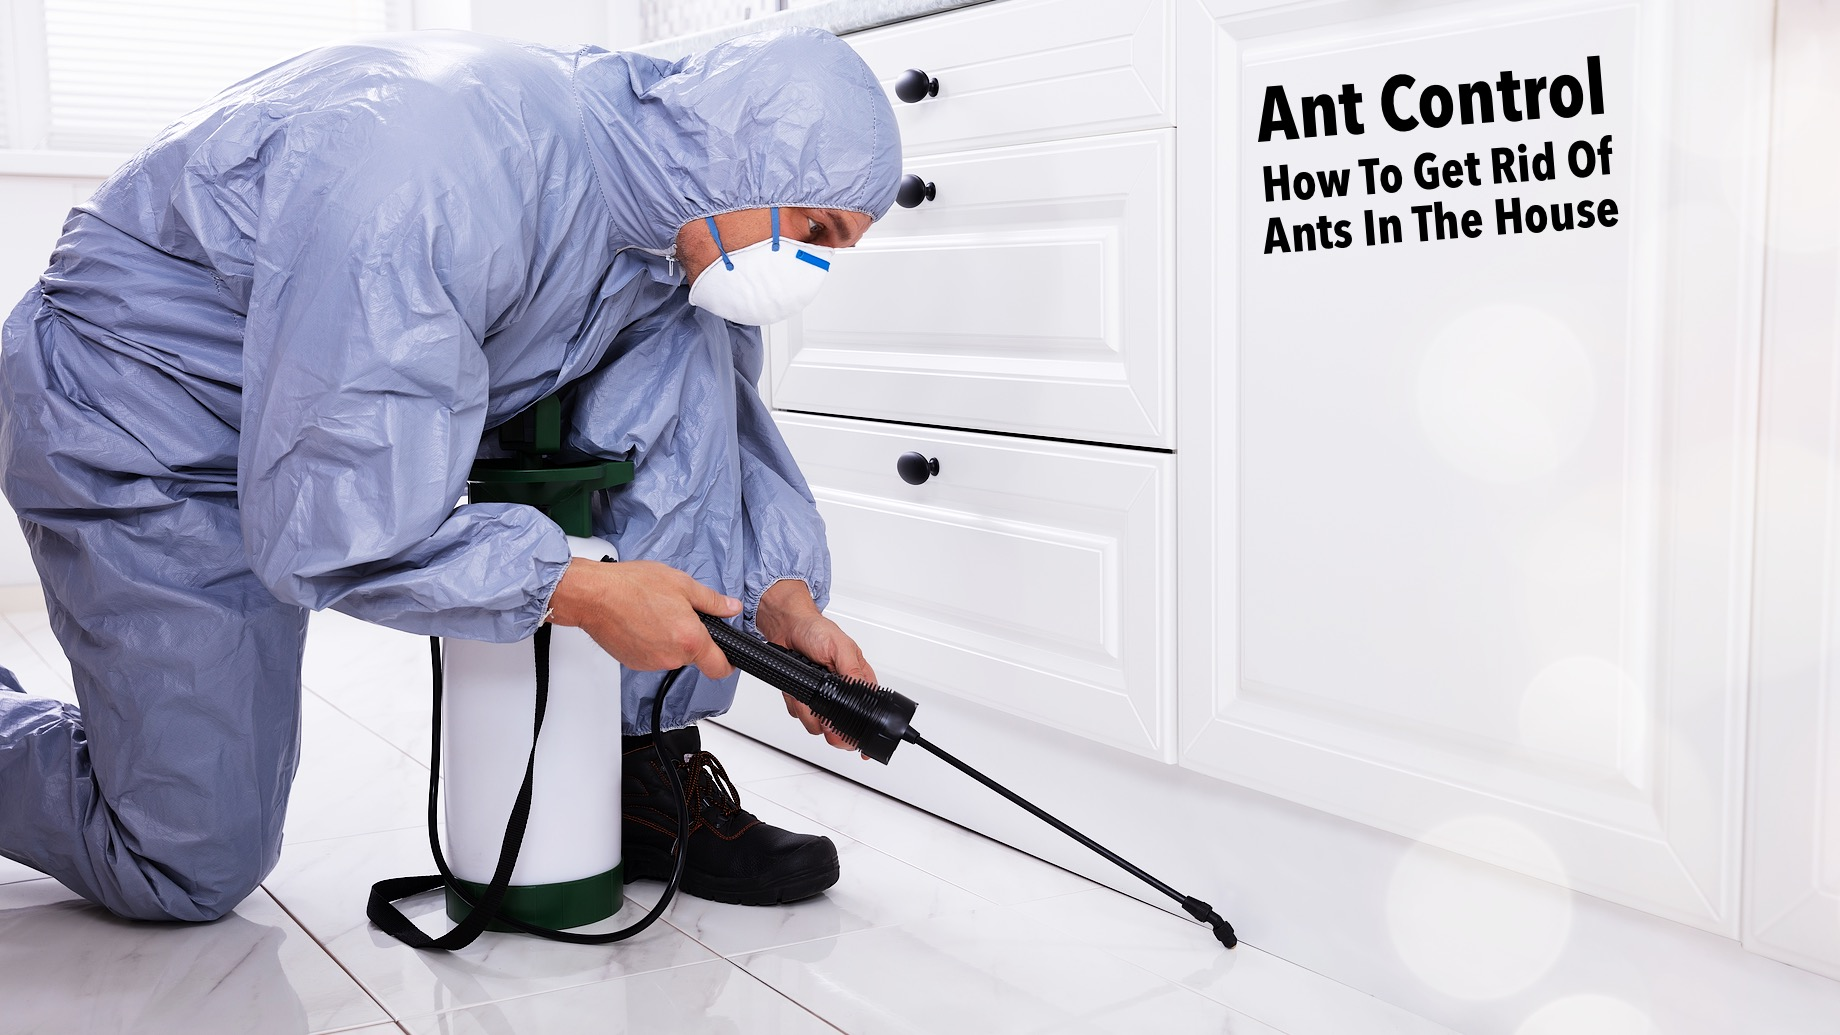 Ant Control - How To Get Rid Of Ants In The House